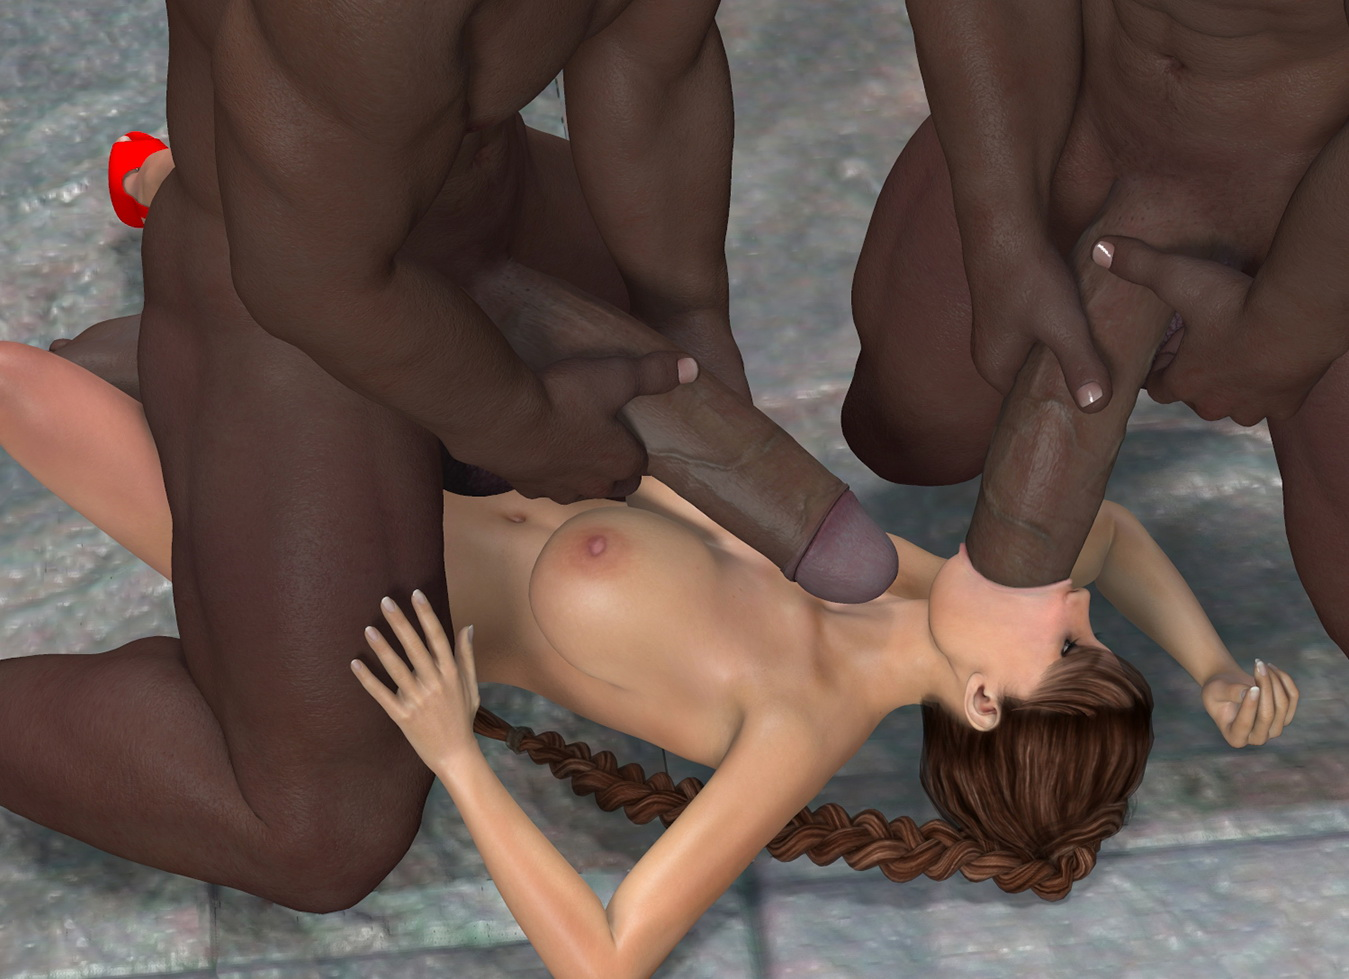 3d sex for free nude tube